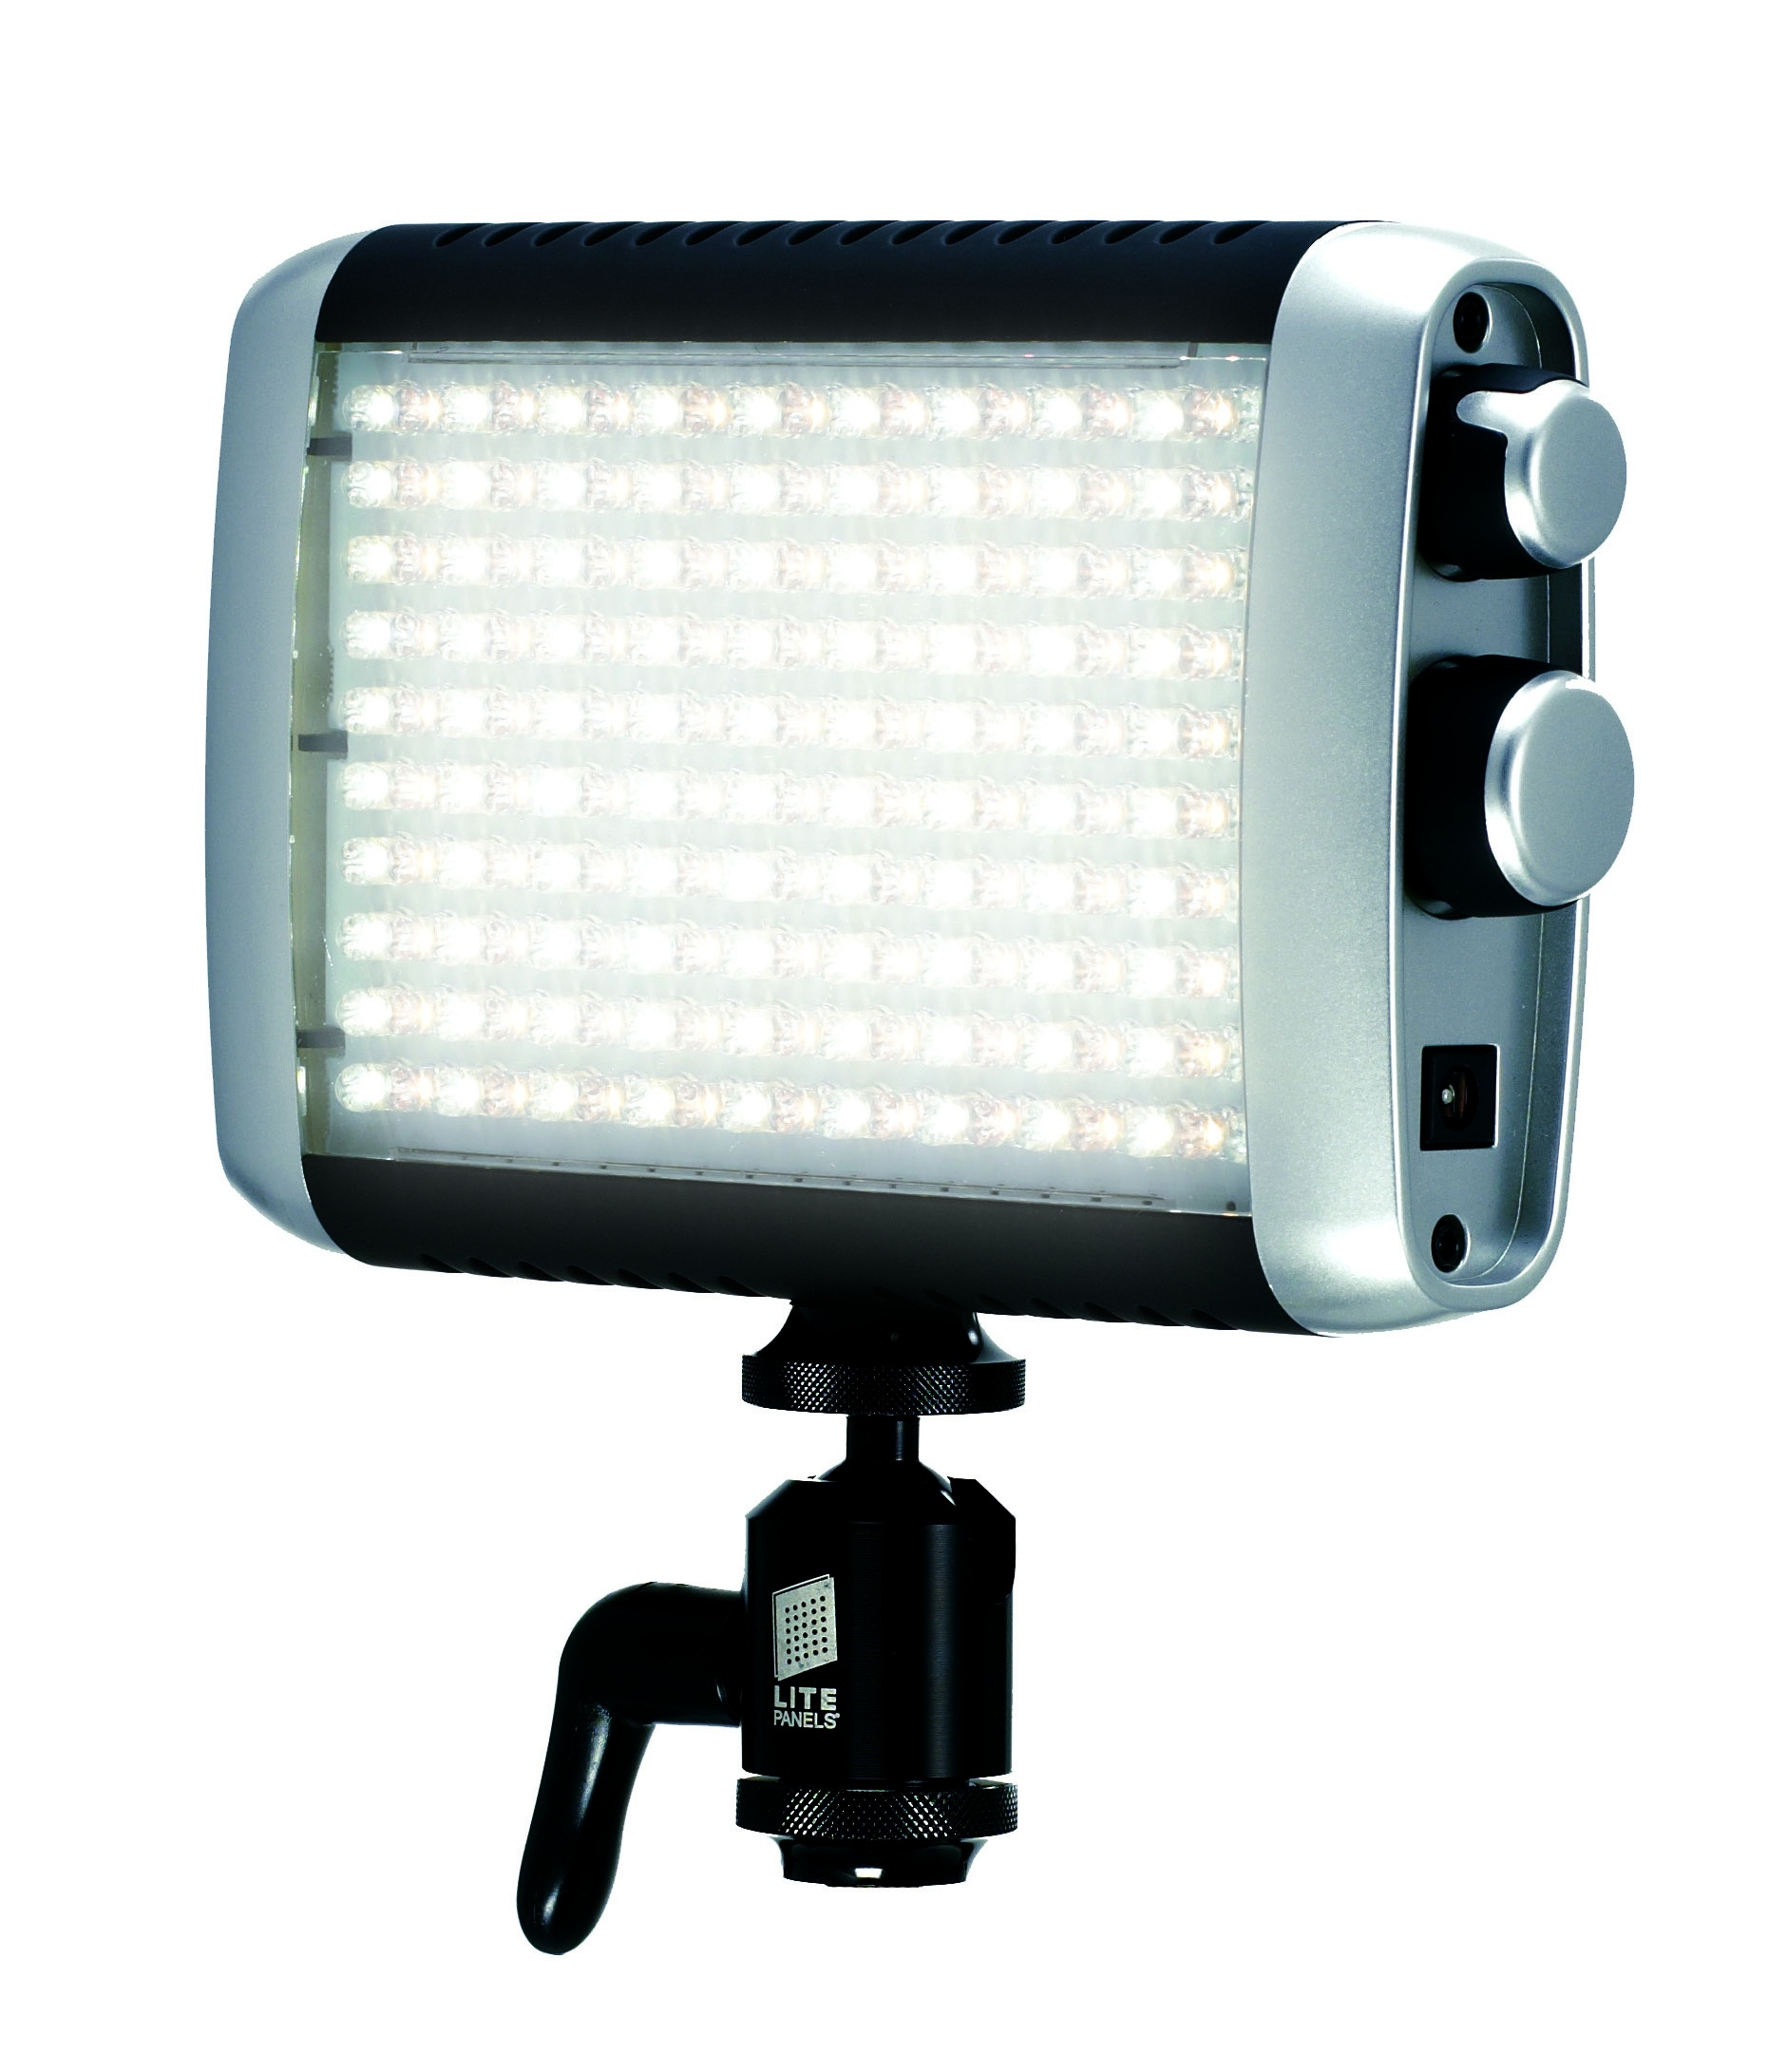 universal led light savage products luminous luminousproledvideolight lights video pro studio lighting